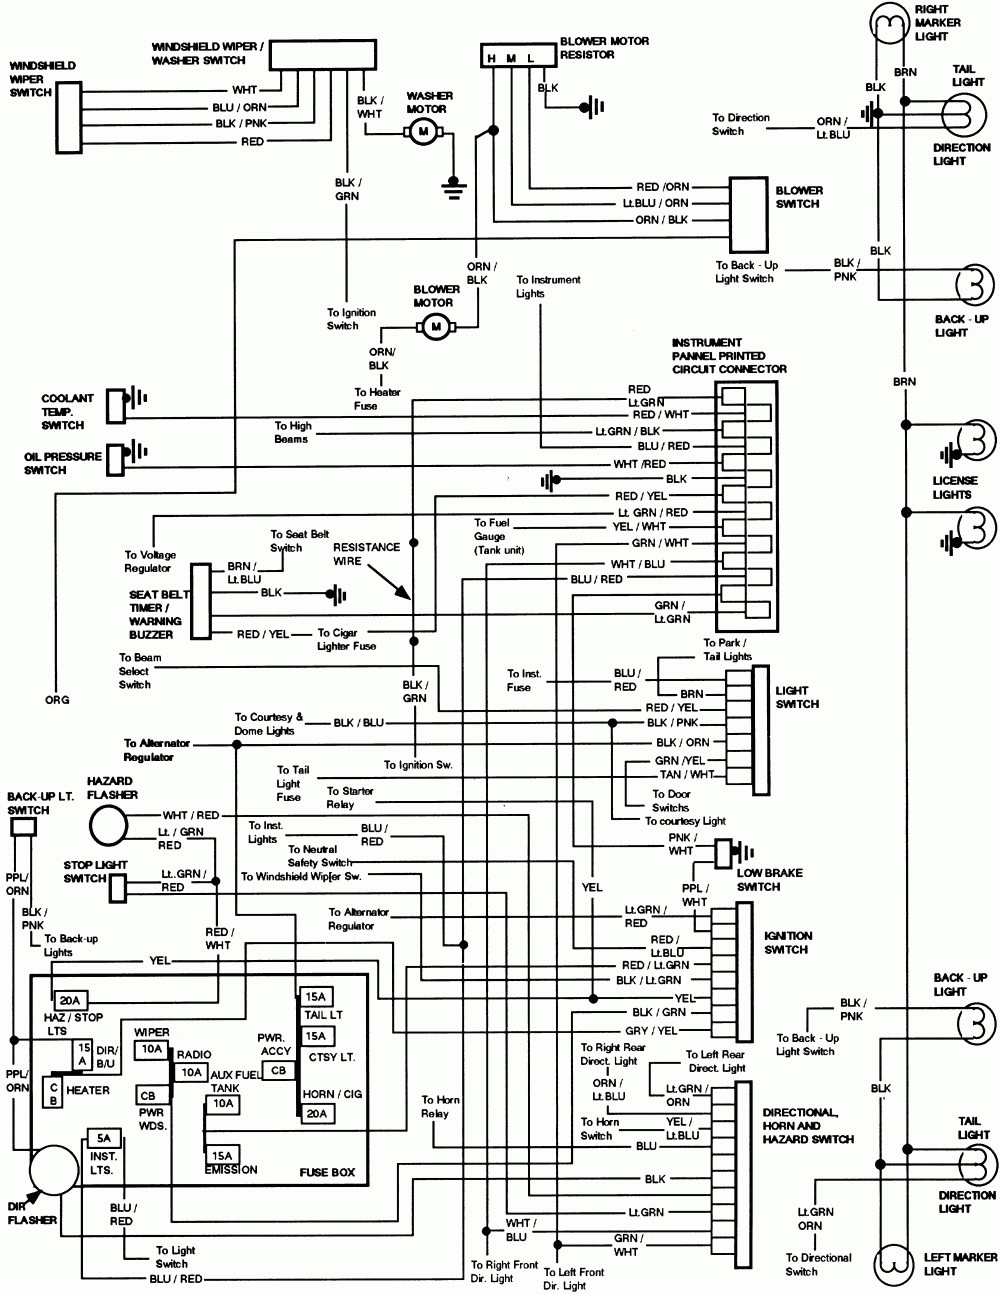 1988 F150 Wiring Diagram - Wiring Diagram Schema Ford F Ke Light Tail Wiring Diagrams on